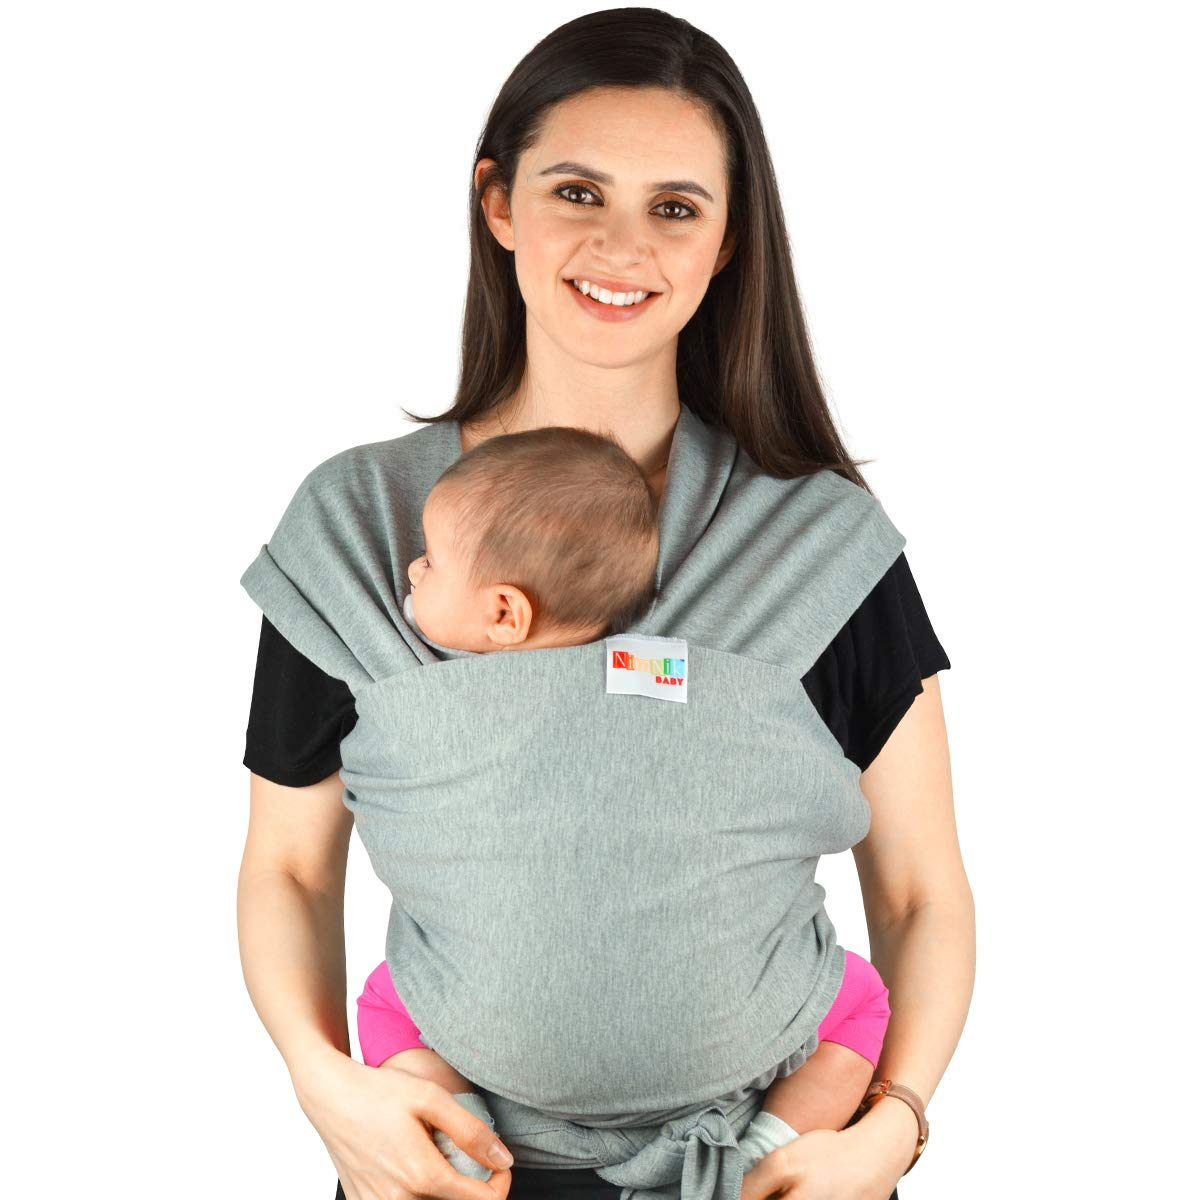 Activity & Gear Practical Soft Baby Carrier Cotton Ring Baby Sling Carrier Baby Holder Extra Comfortable For Easy Wearing Carrying Of Newborn Infant Gifts Online Shop